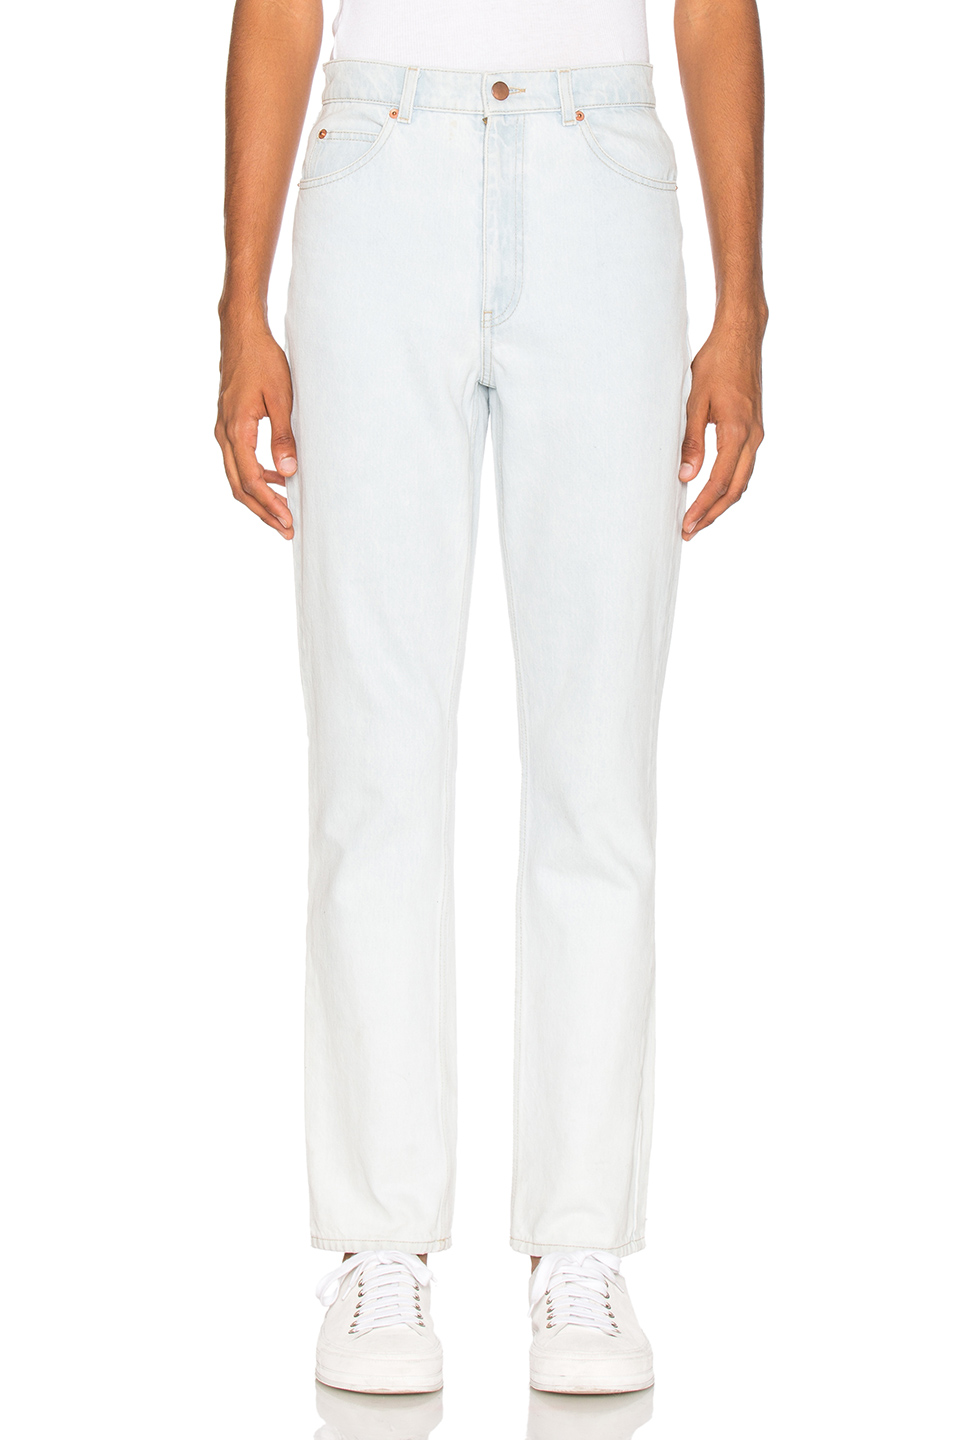 Martine Rose Slim High Waist Jean in Blue